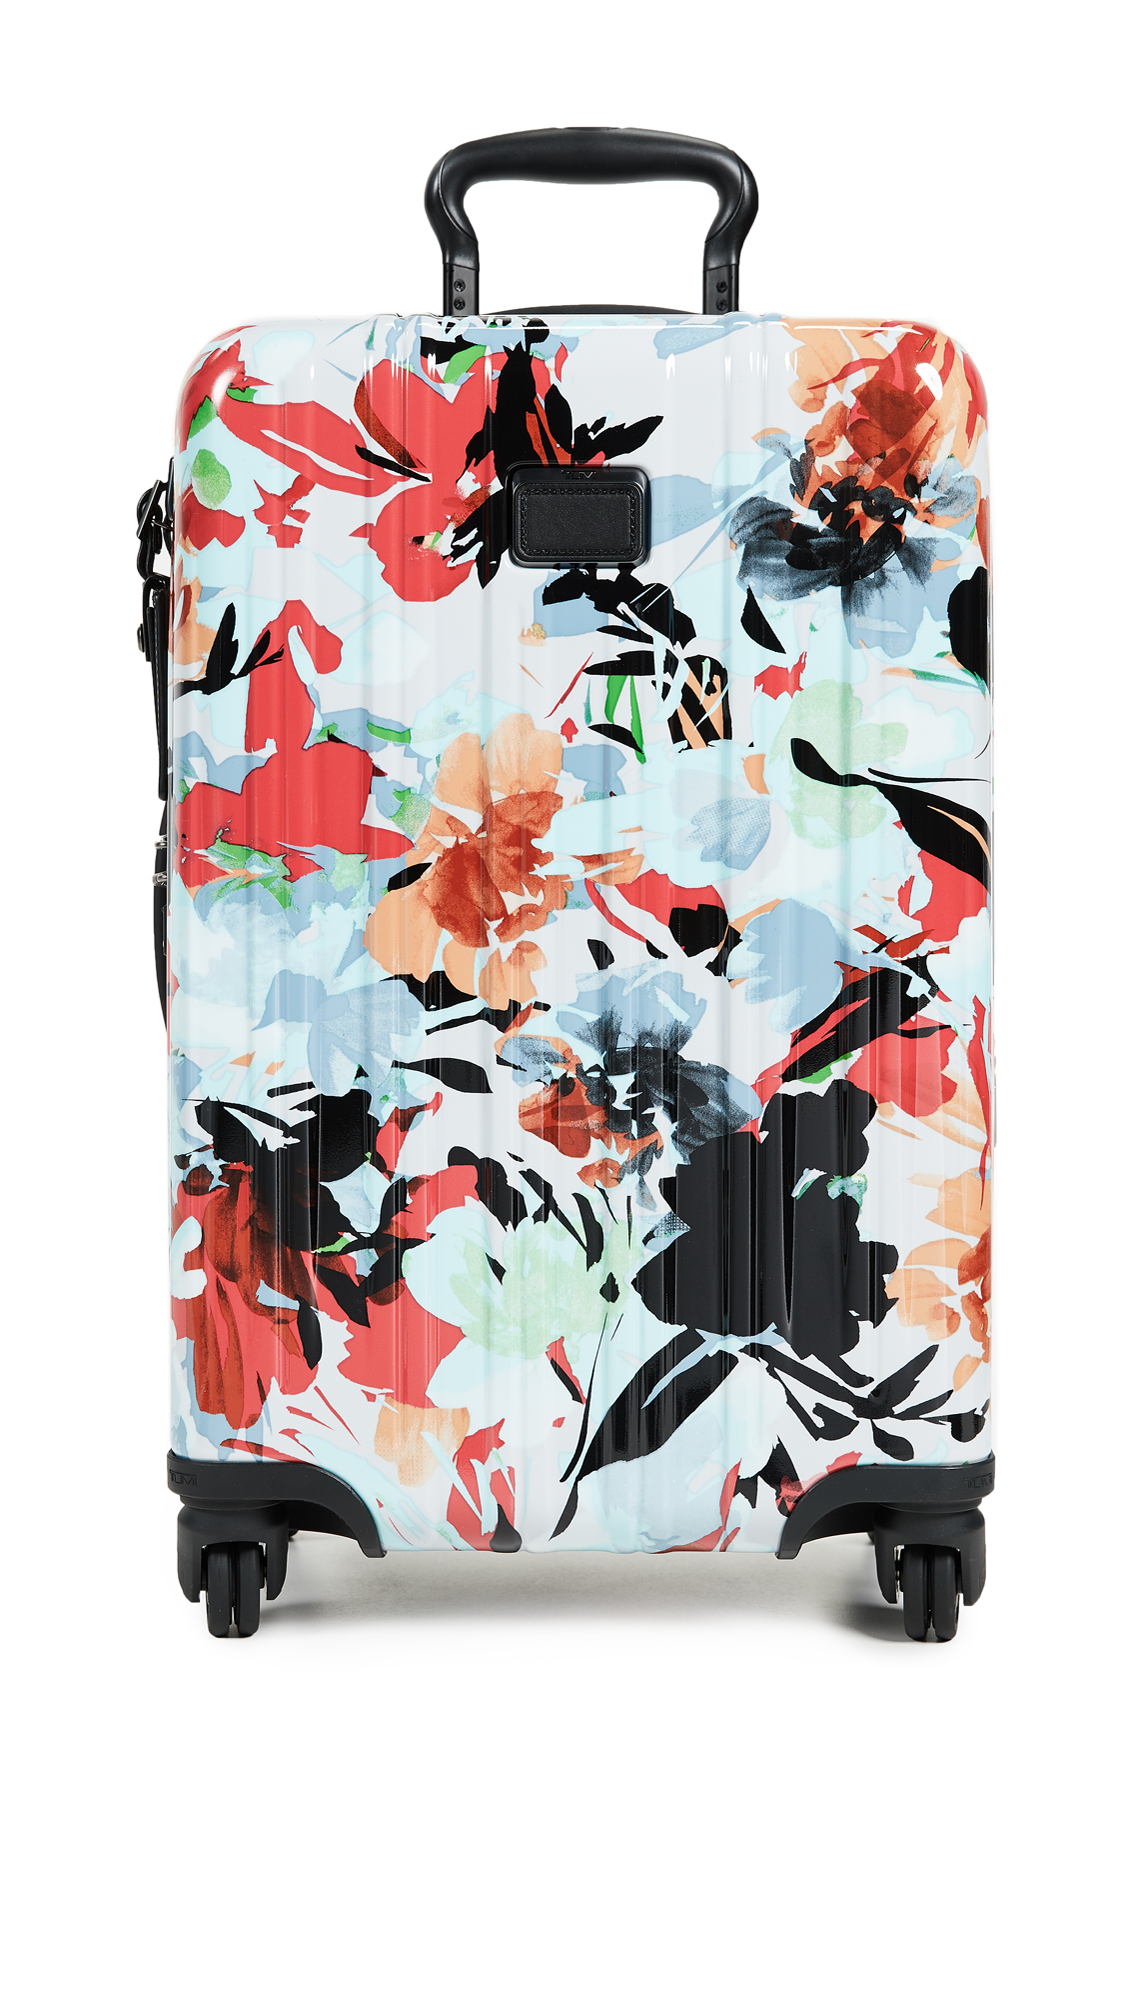 5fb4d0c2ab Tumi International Expandable Carry On Suitcase In Pacific Floral ...